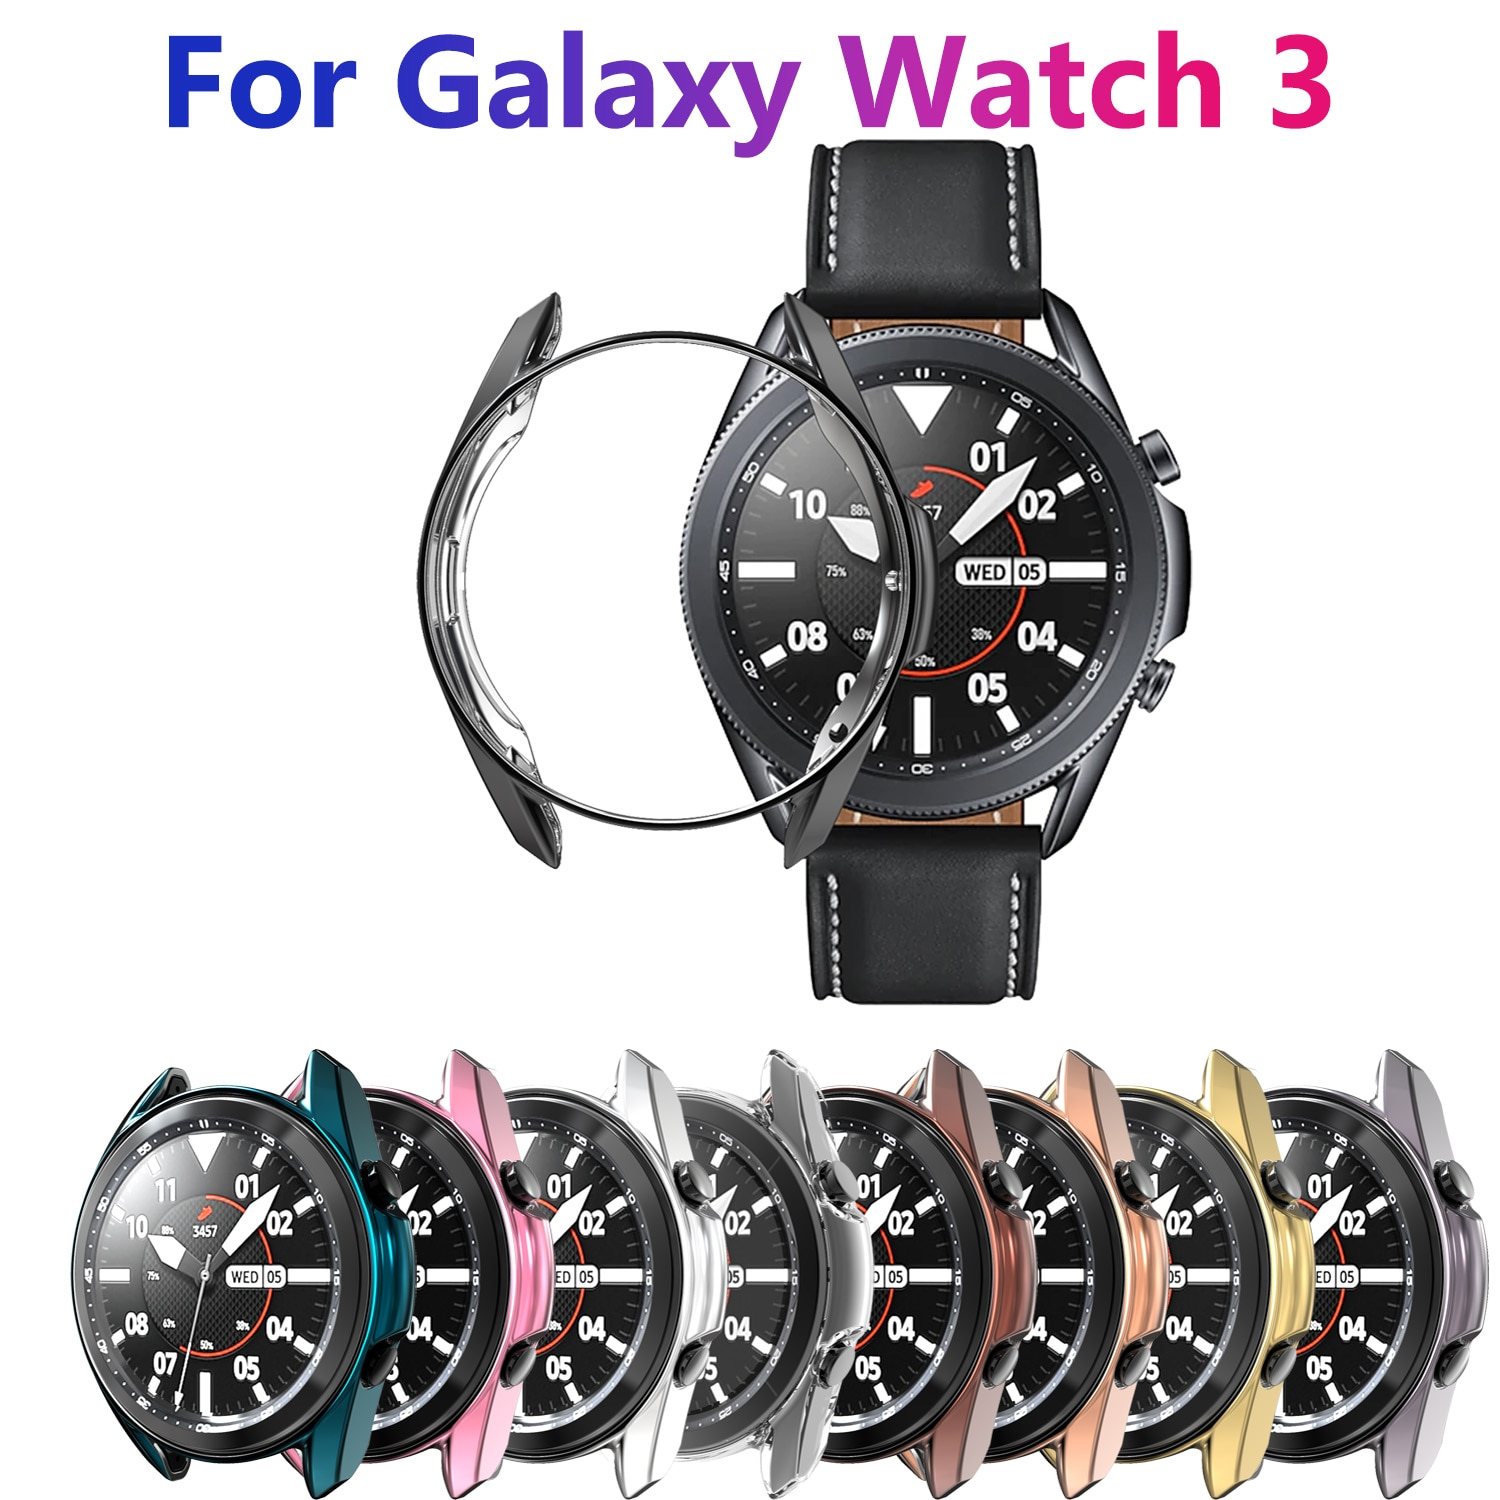 Protective Case For Samsung Galaxy Watch 3 41mm 45mm Smart Watches Cover TPU Frame Shell Protector S